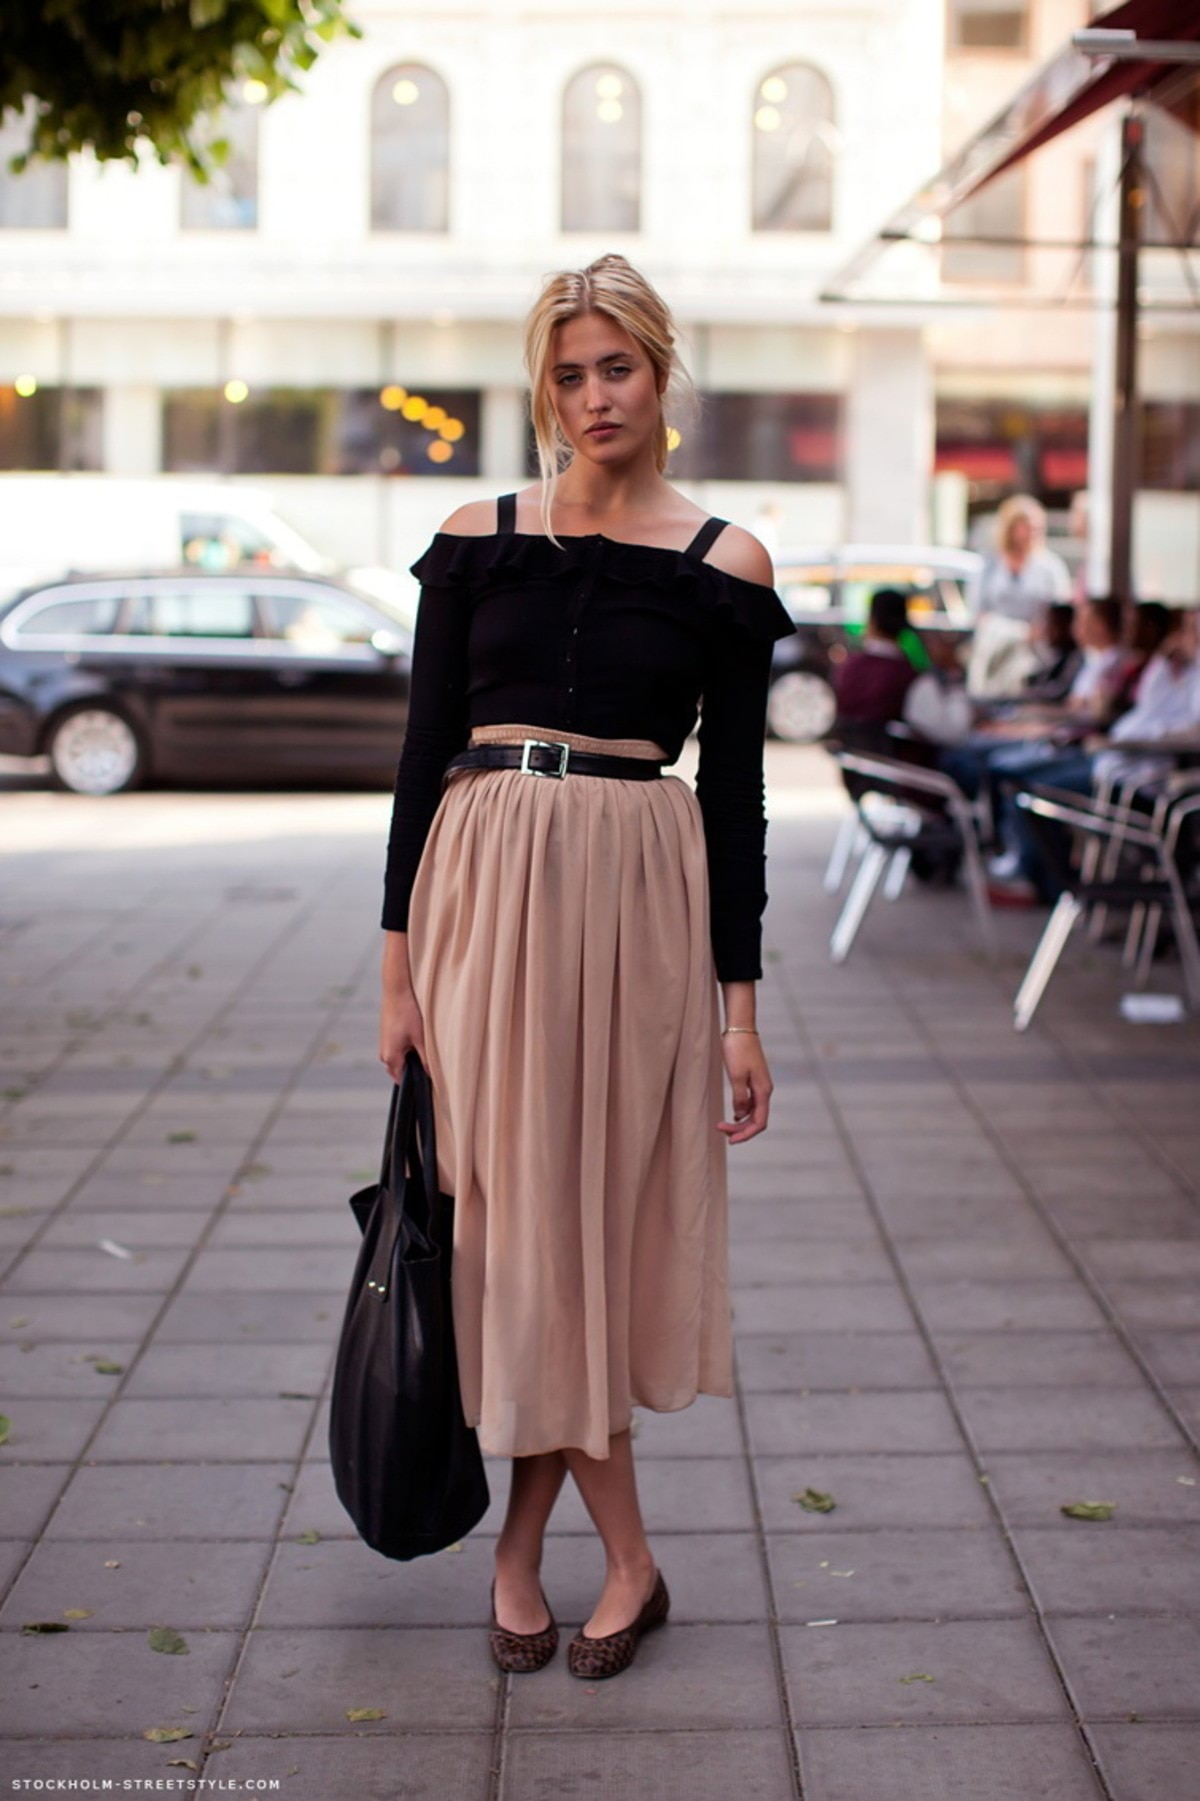 My-Favorite-Ways-To-Wear-A-Pleated-Skirt-This-Summer-8